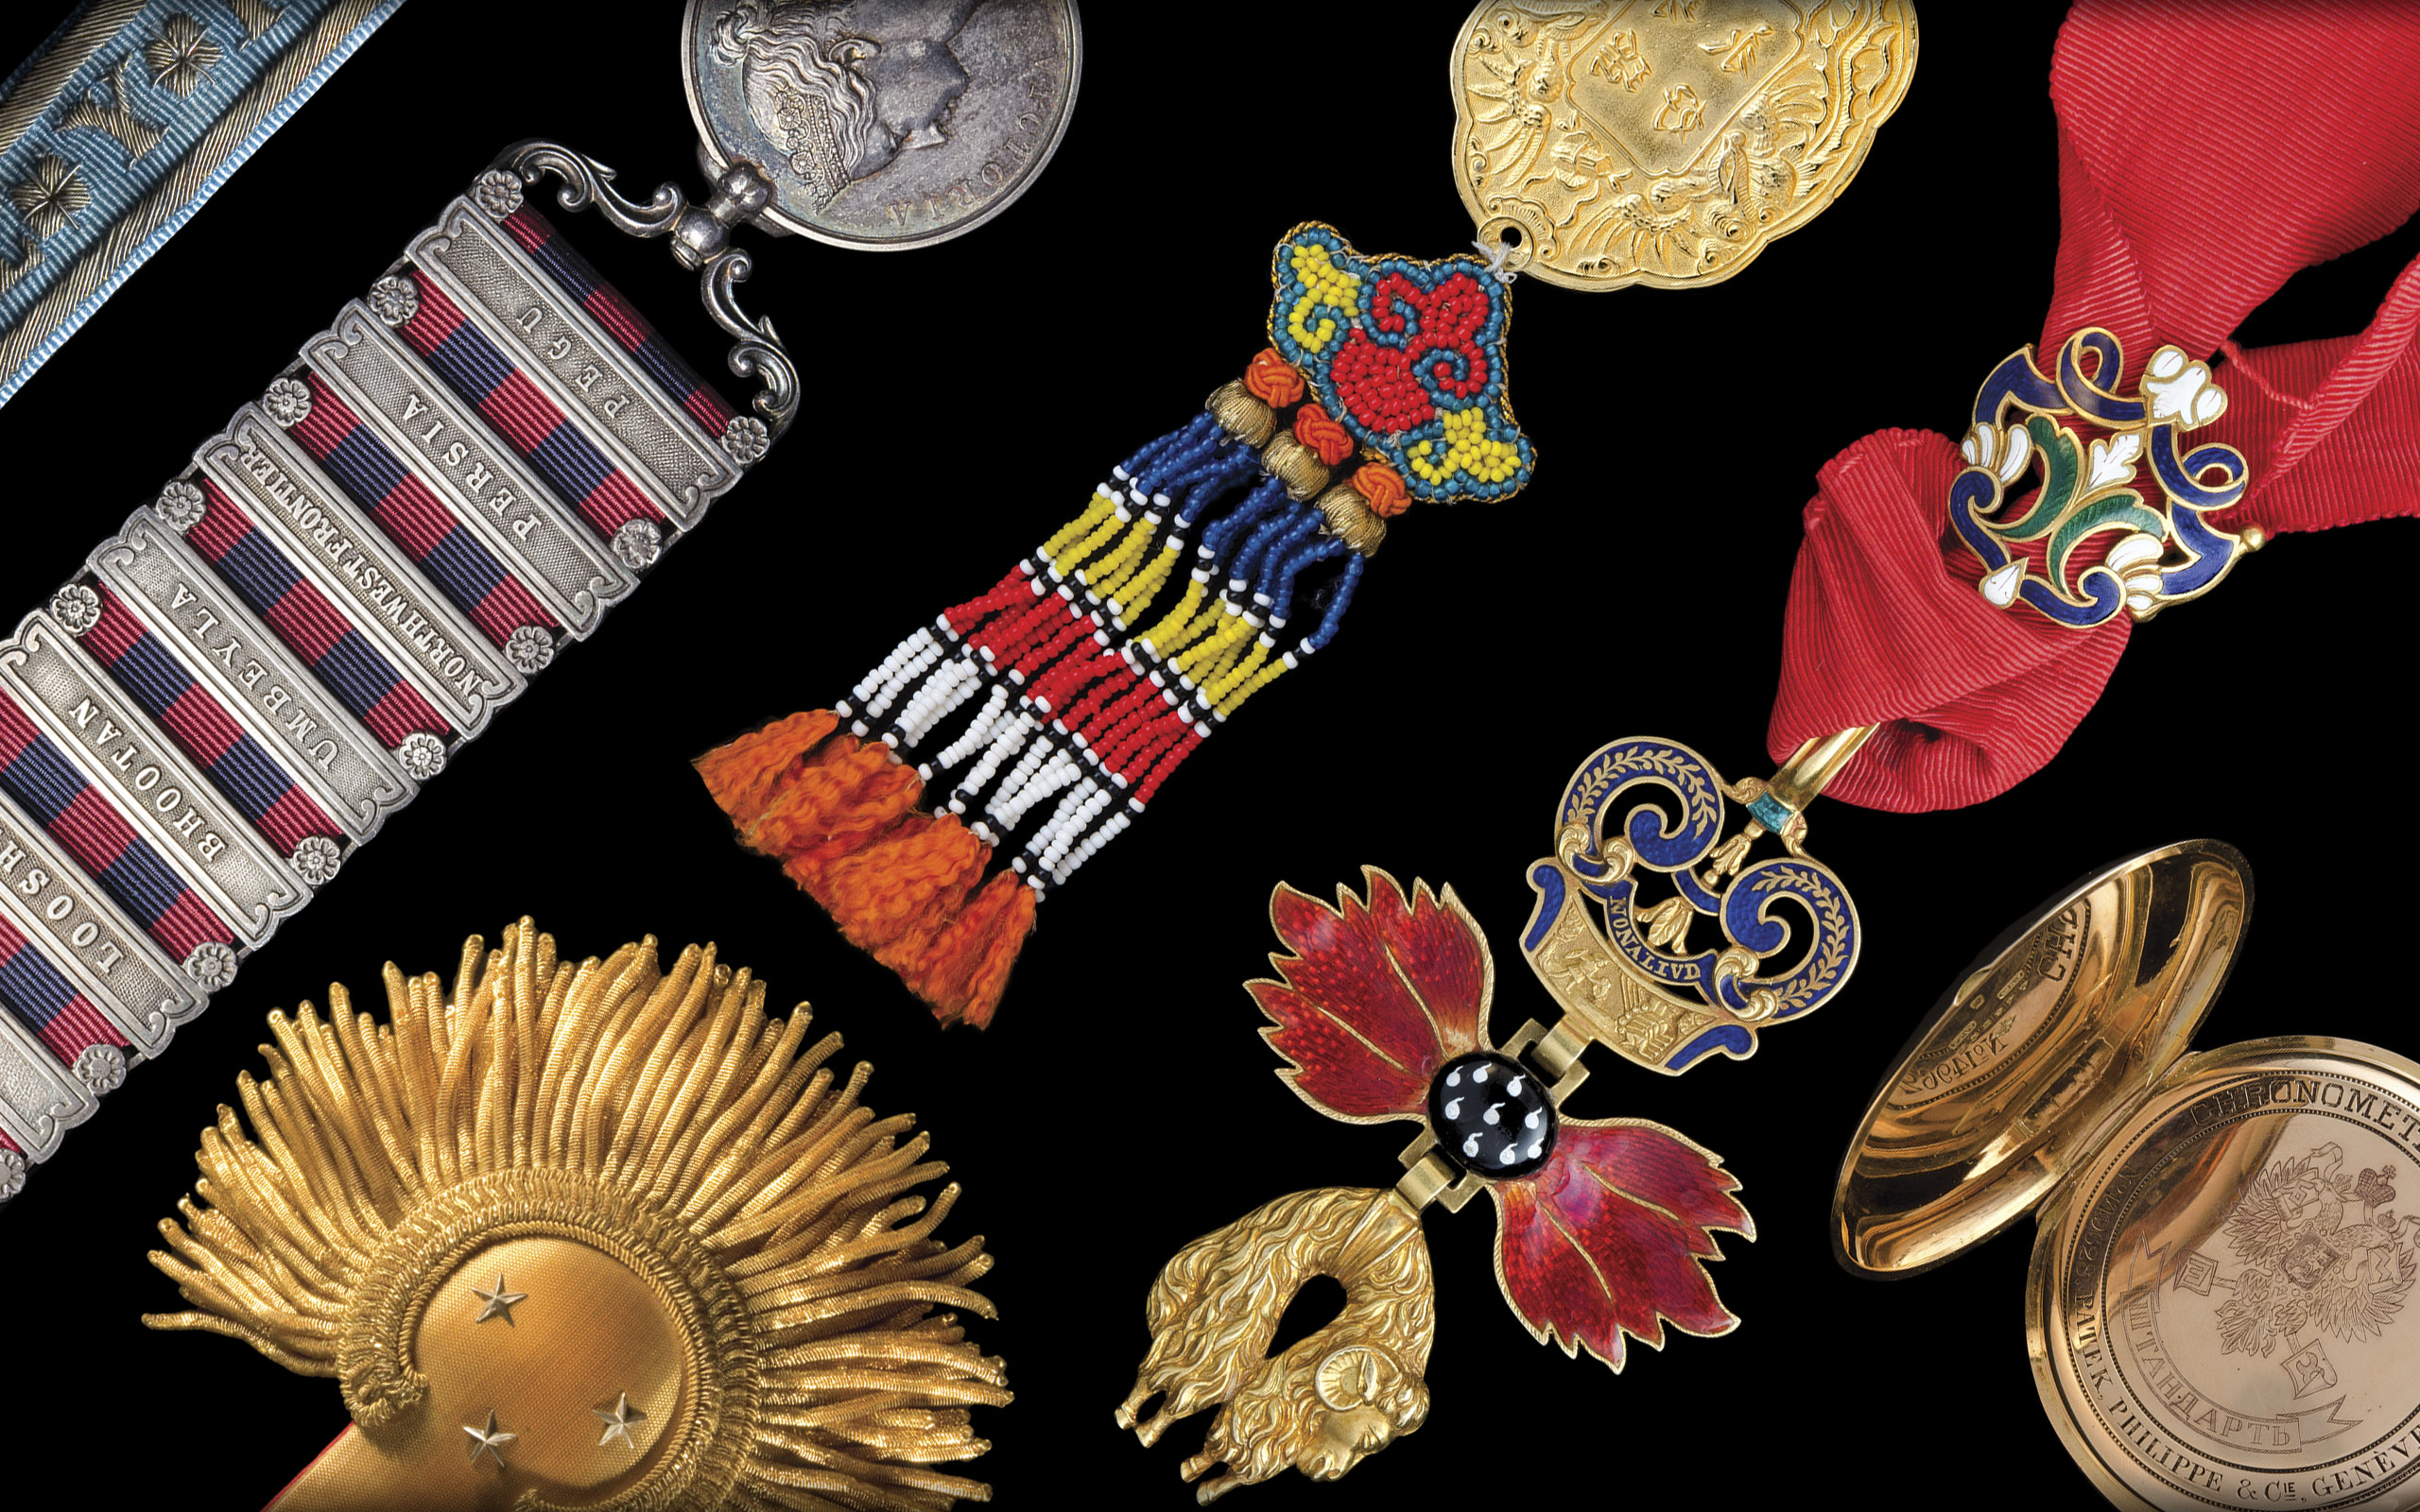 Photography of Medals, Orders and Decorations from several periods and countries, photographed for Morton and Eden in association with Sotheby's sold in auction, London Photography and retouch by Maria Queralt